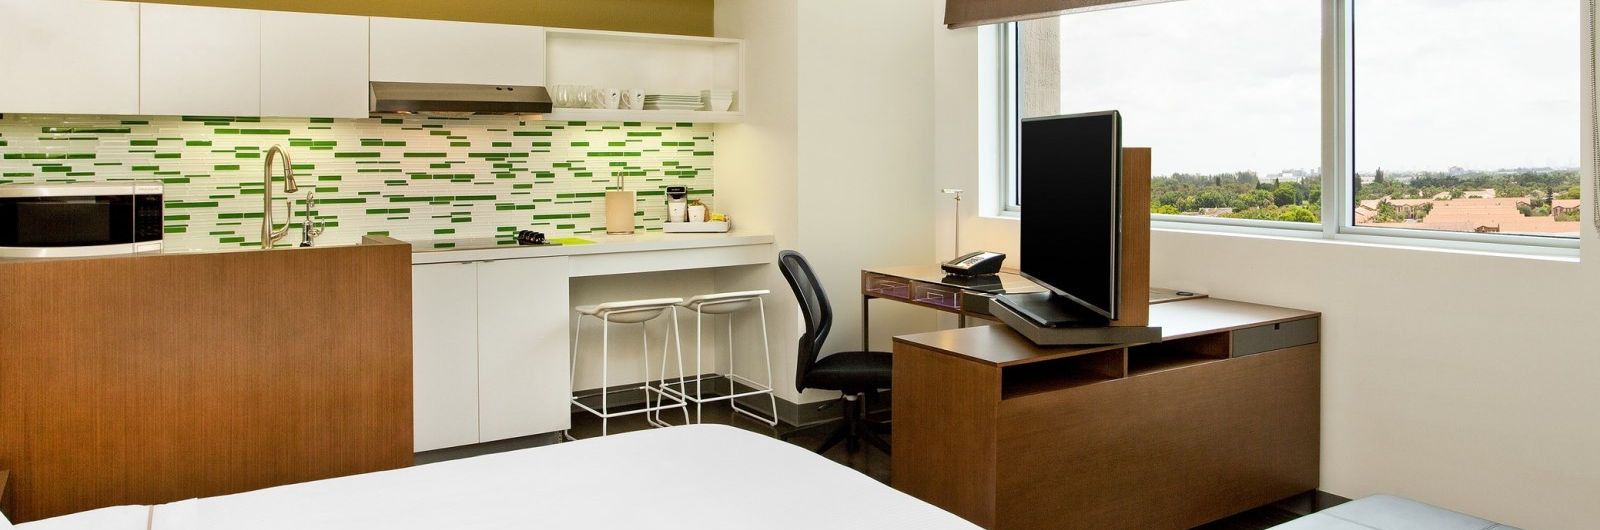 Miami Extended Stay Hotel